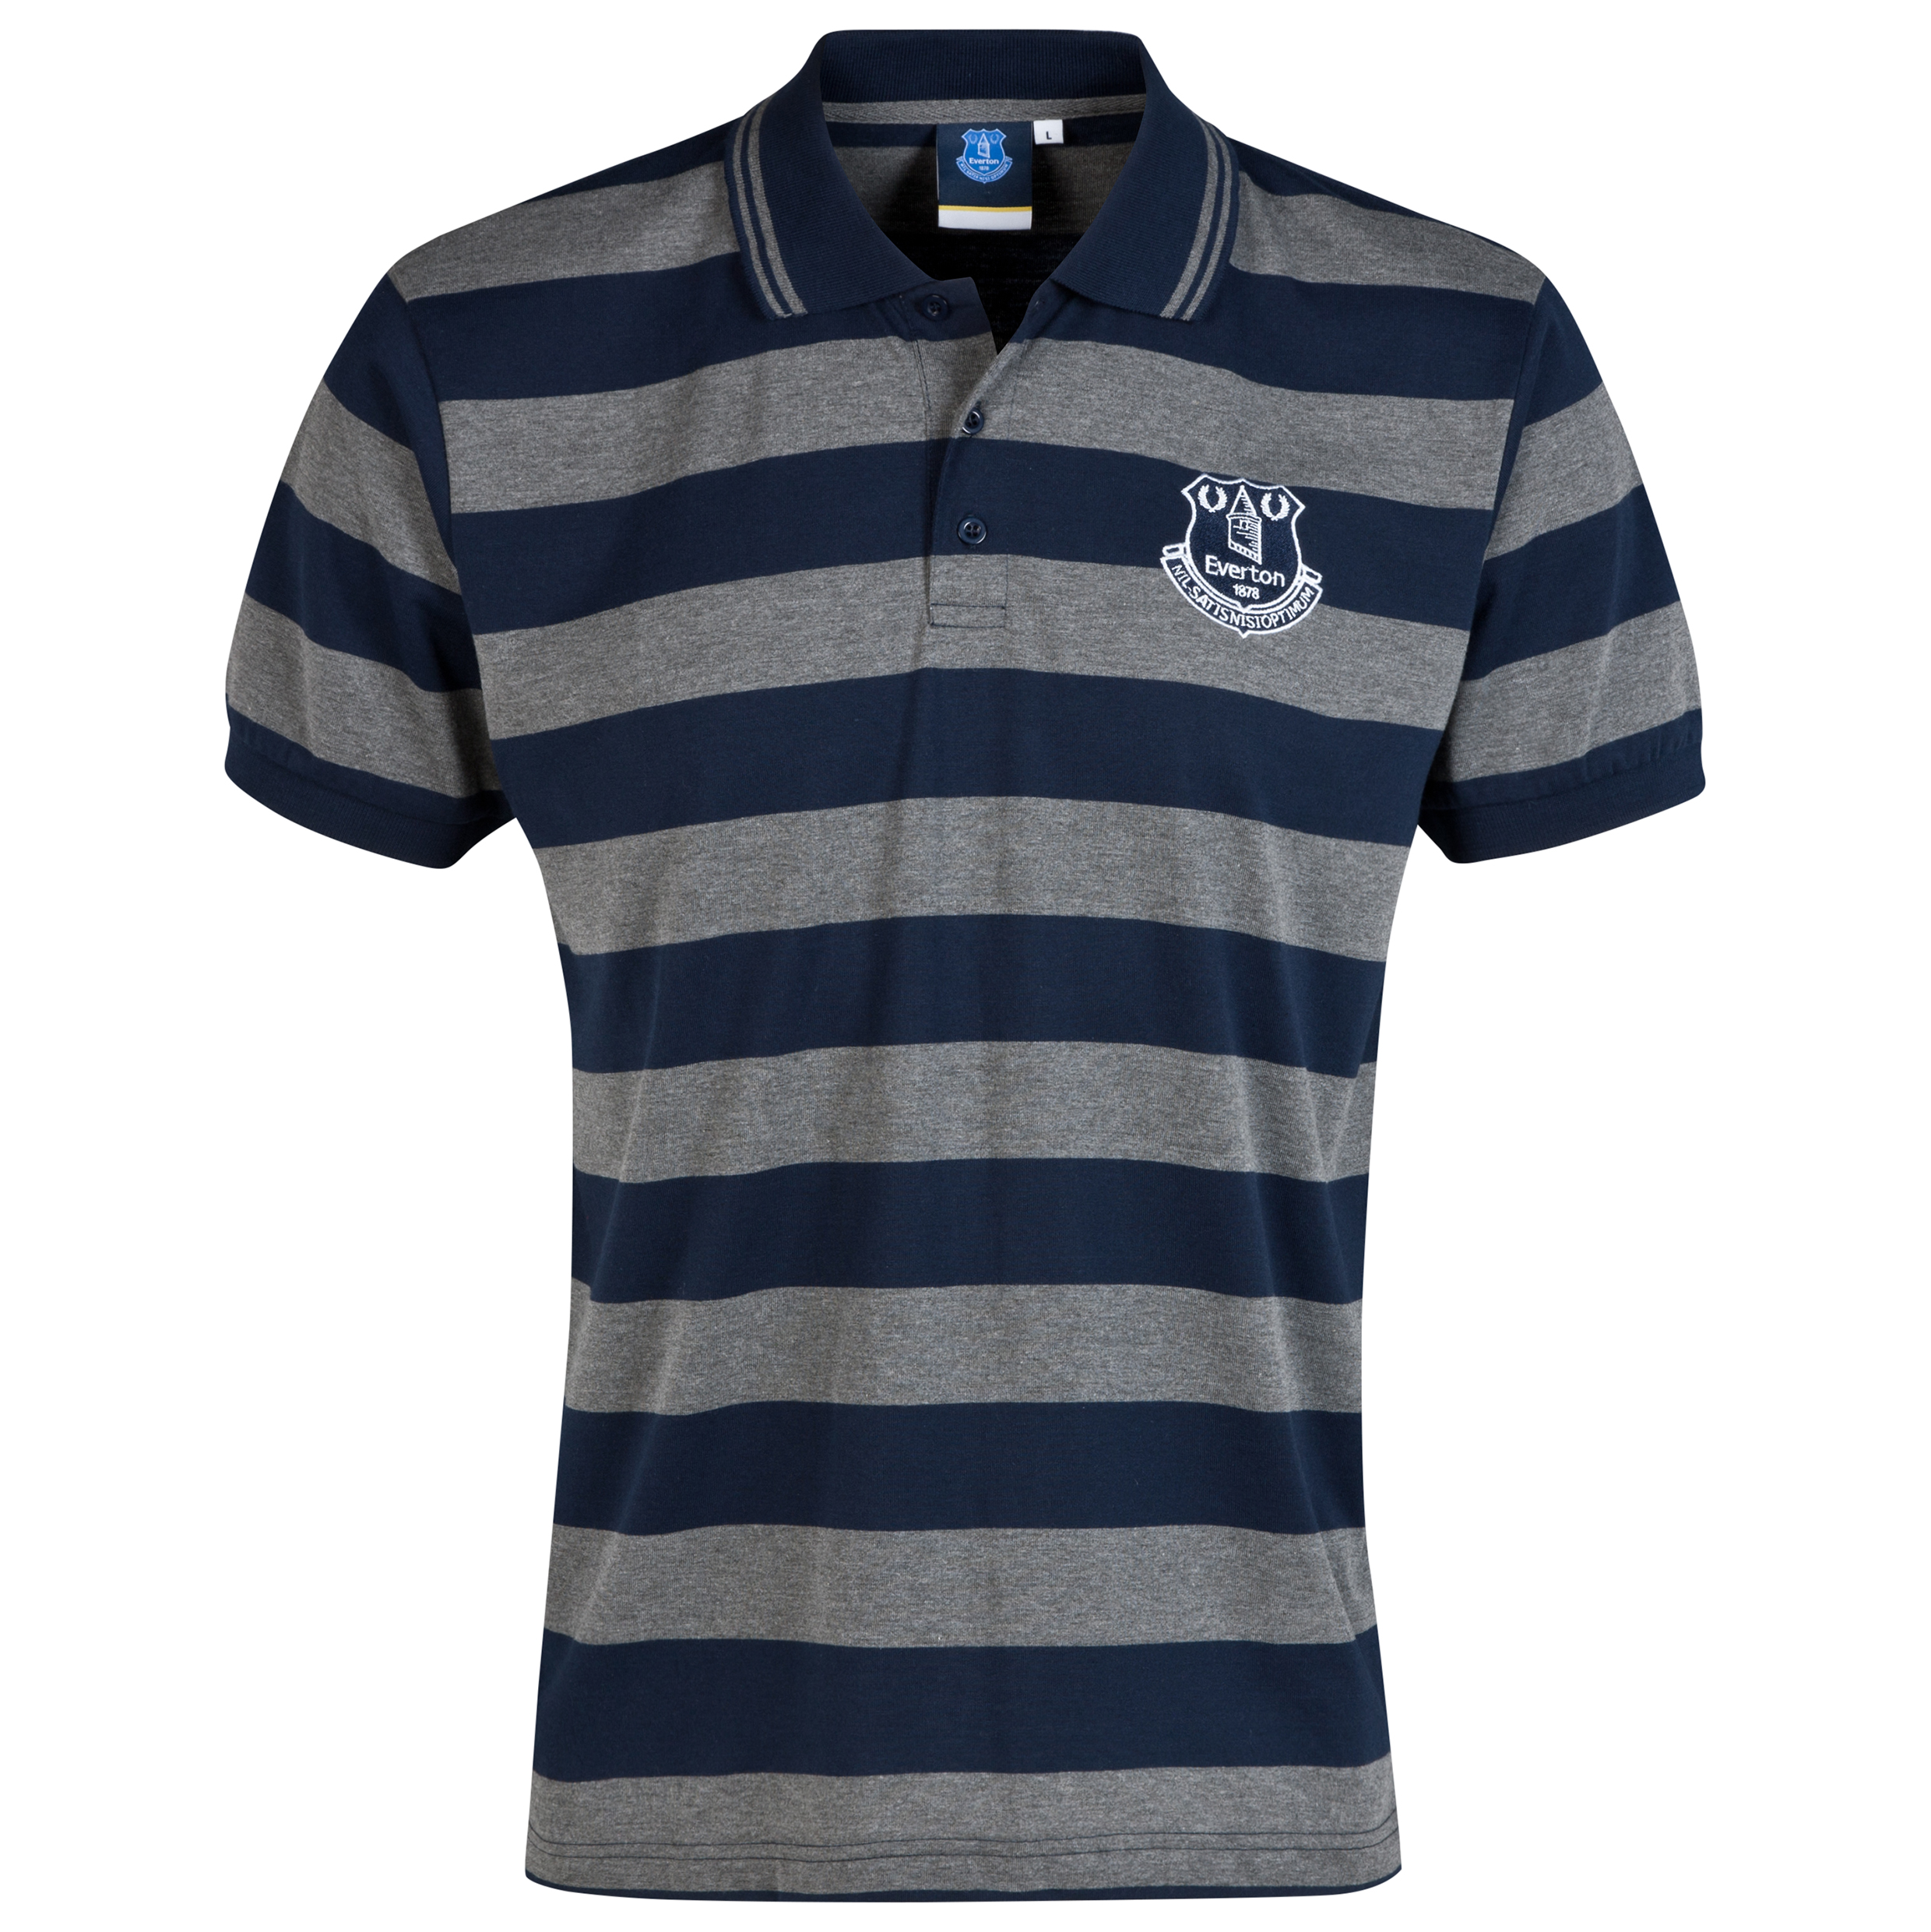 Everton Essential Stripe Polo Shirt - Navy/Grey - Mens